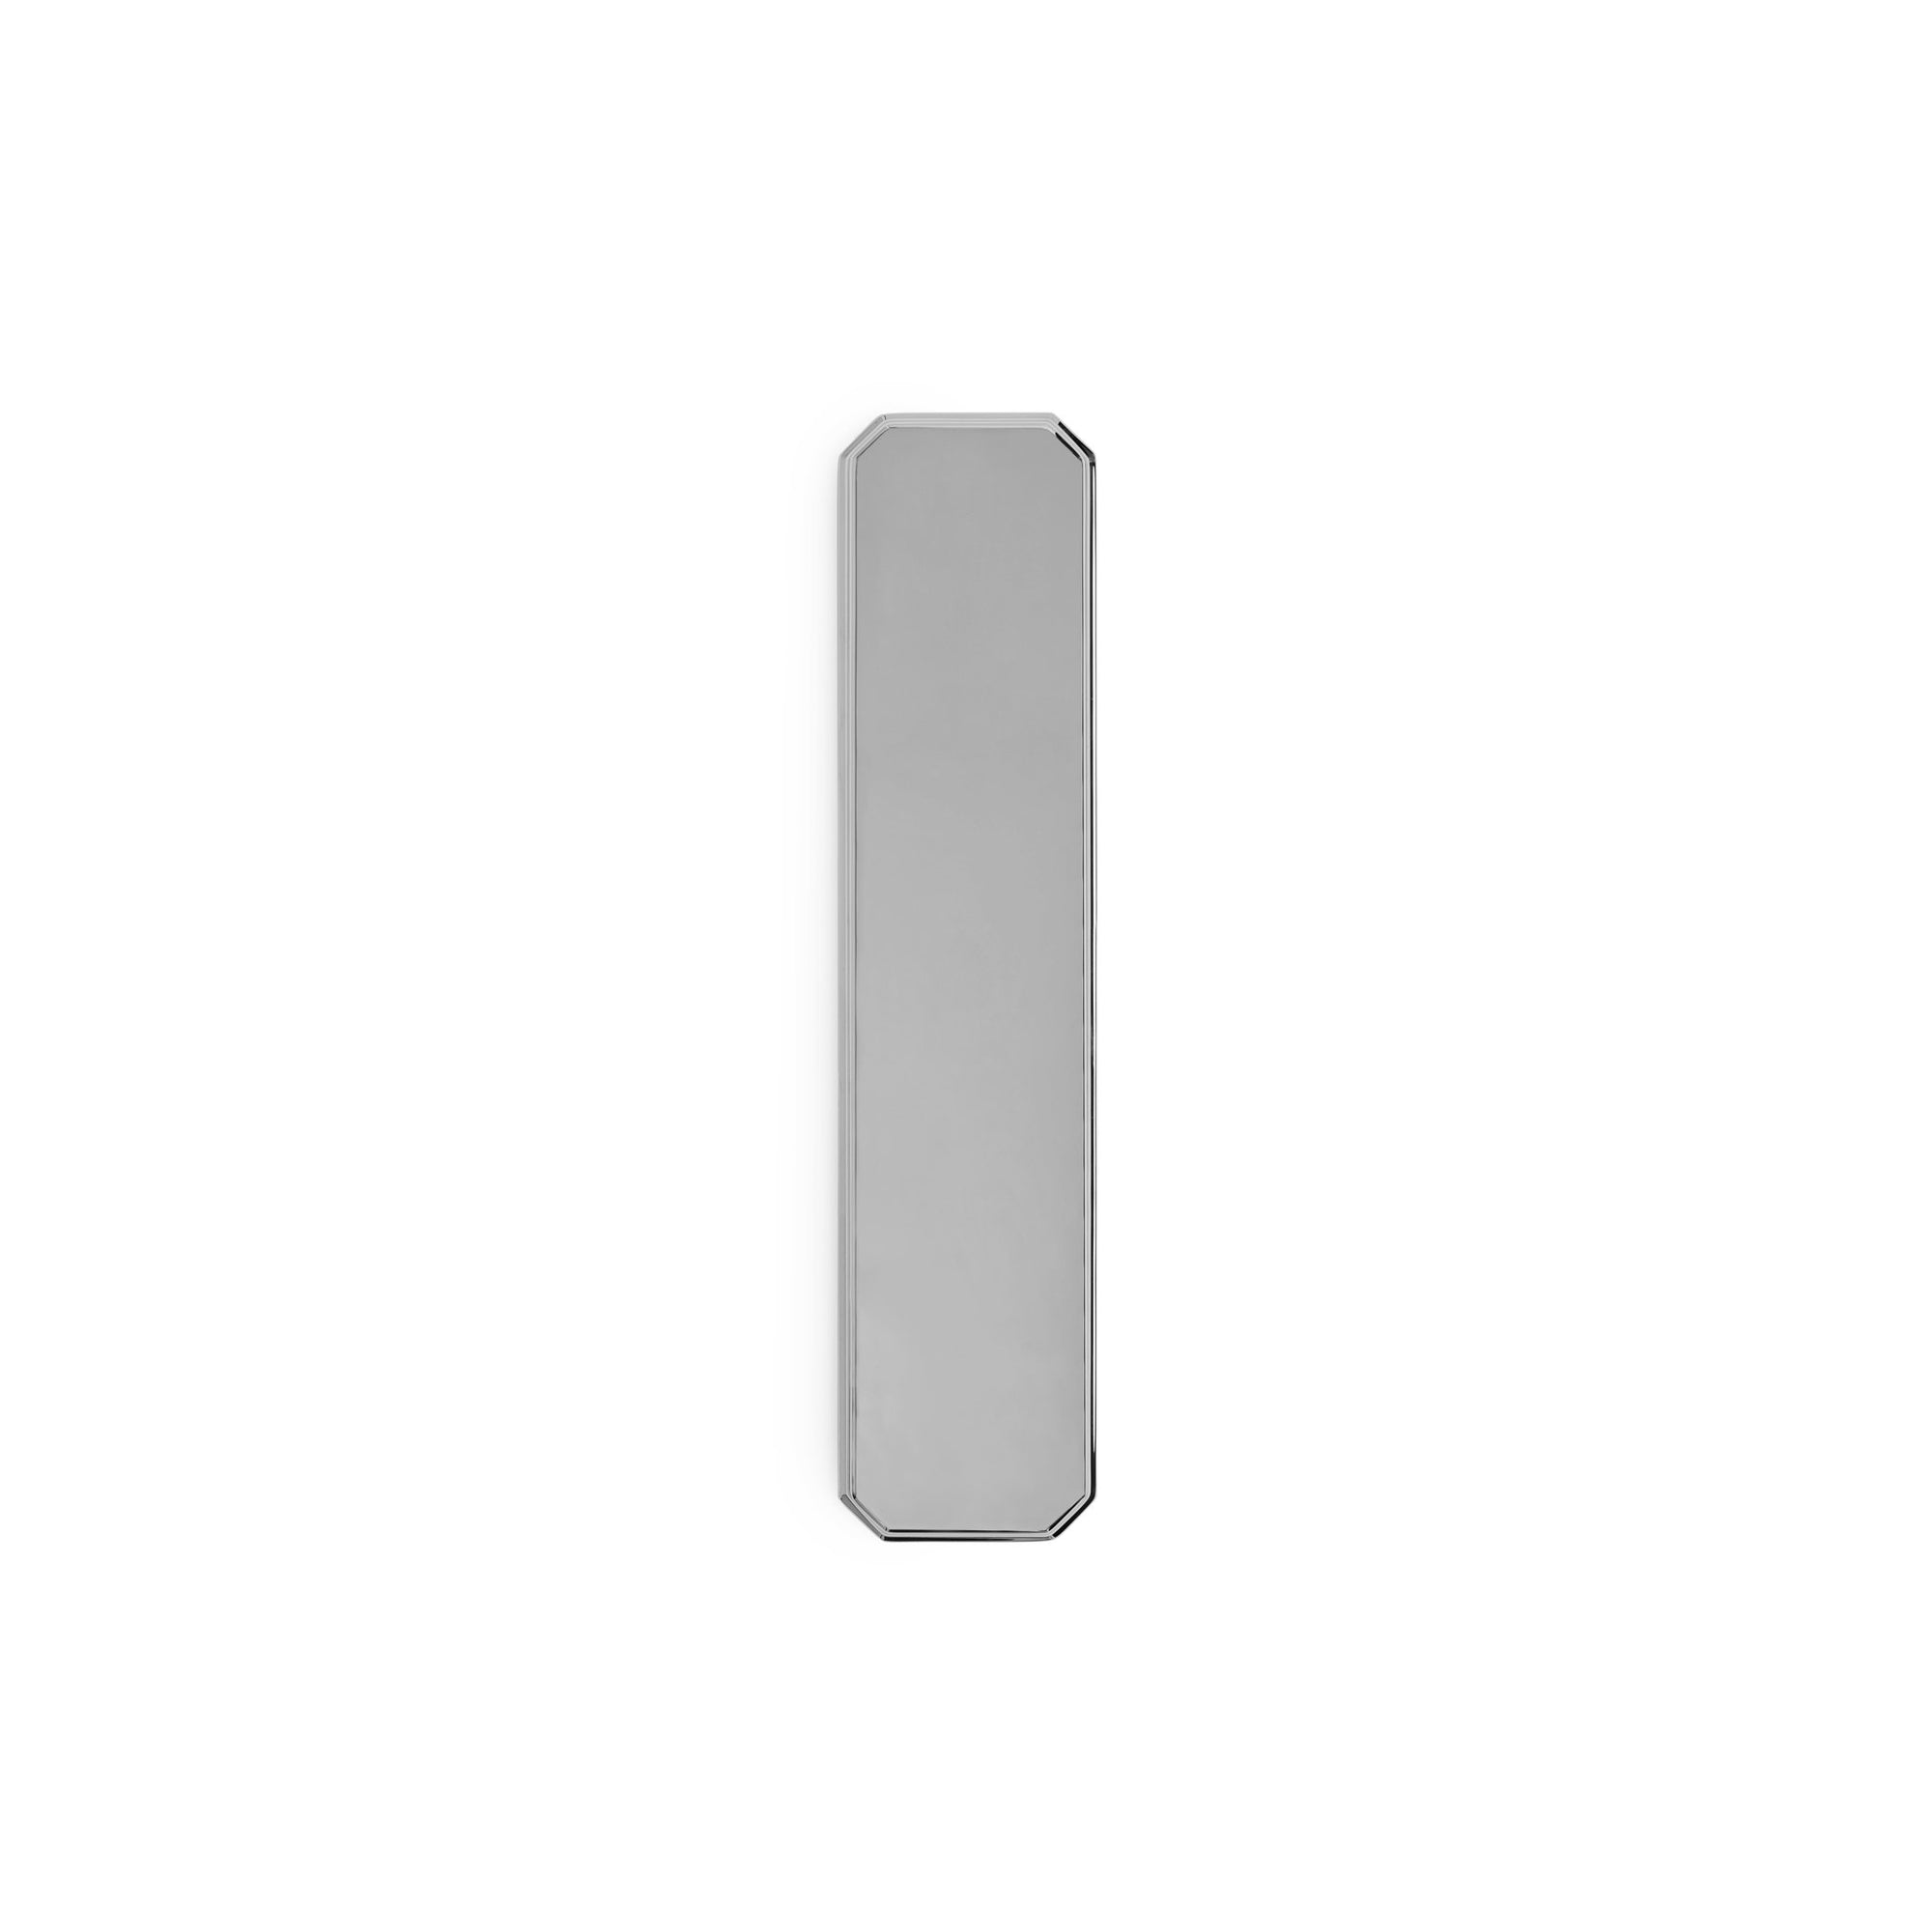 0035-13-CP Sherle Wagner International Harrison 13 inch Push Plate in Polished Chrome metal finish